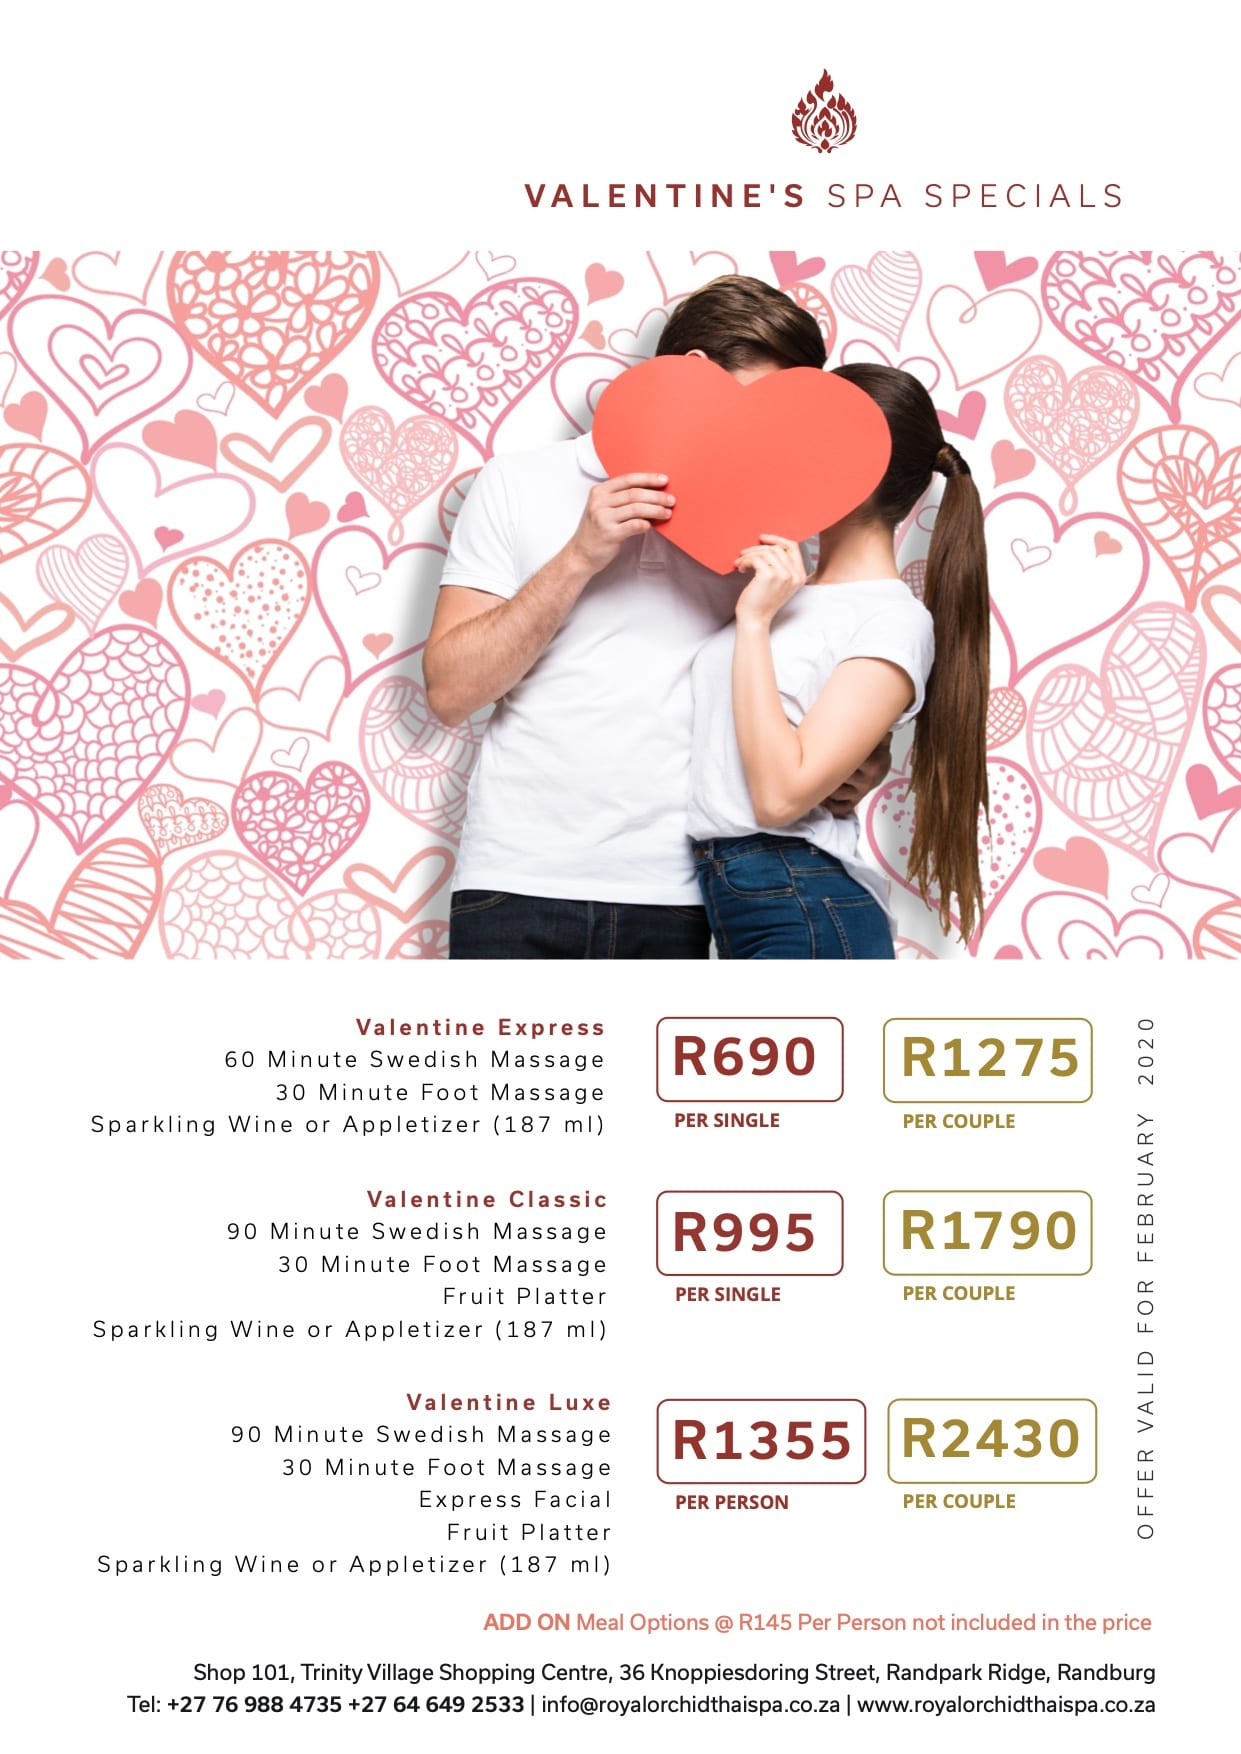 Valentines Spa Specials Johannesburg - Royal Orchid Thai Spa